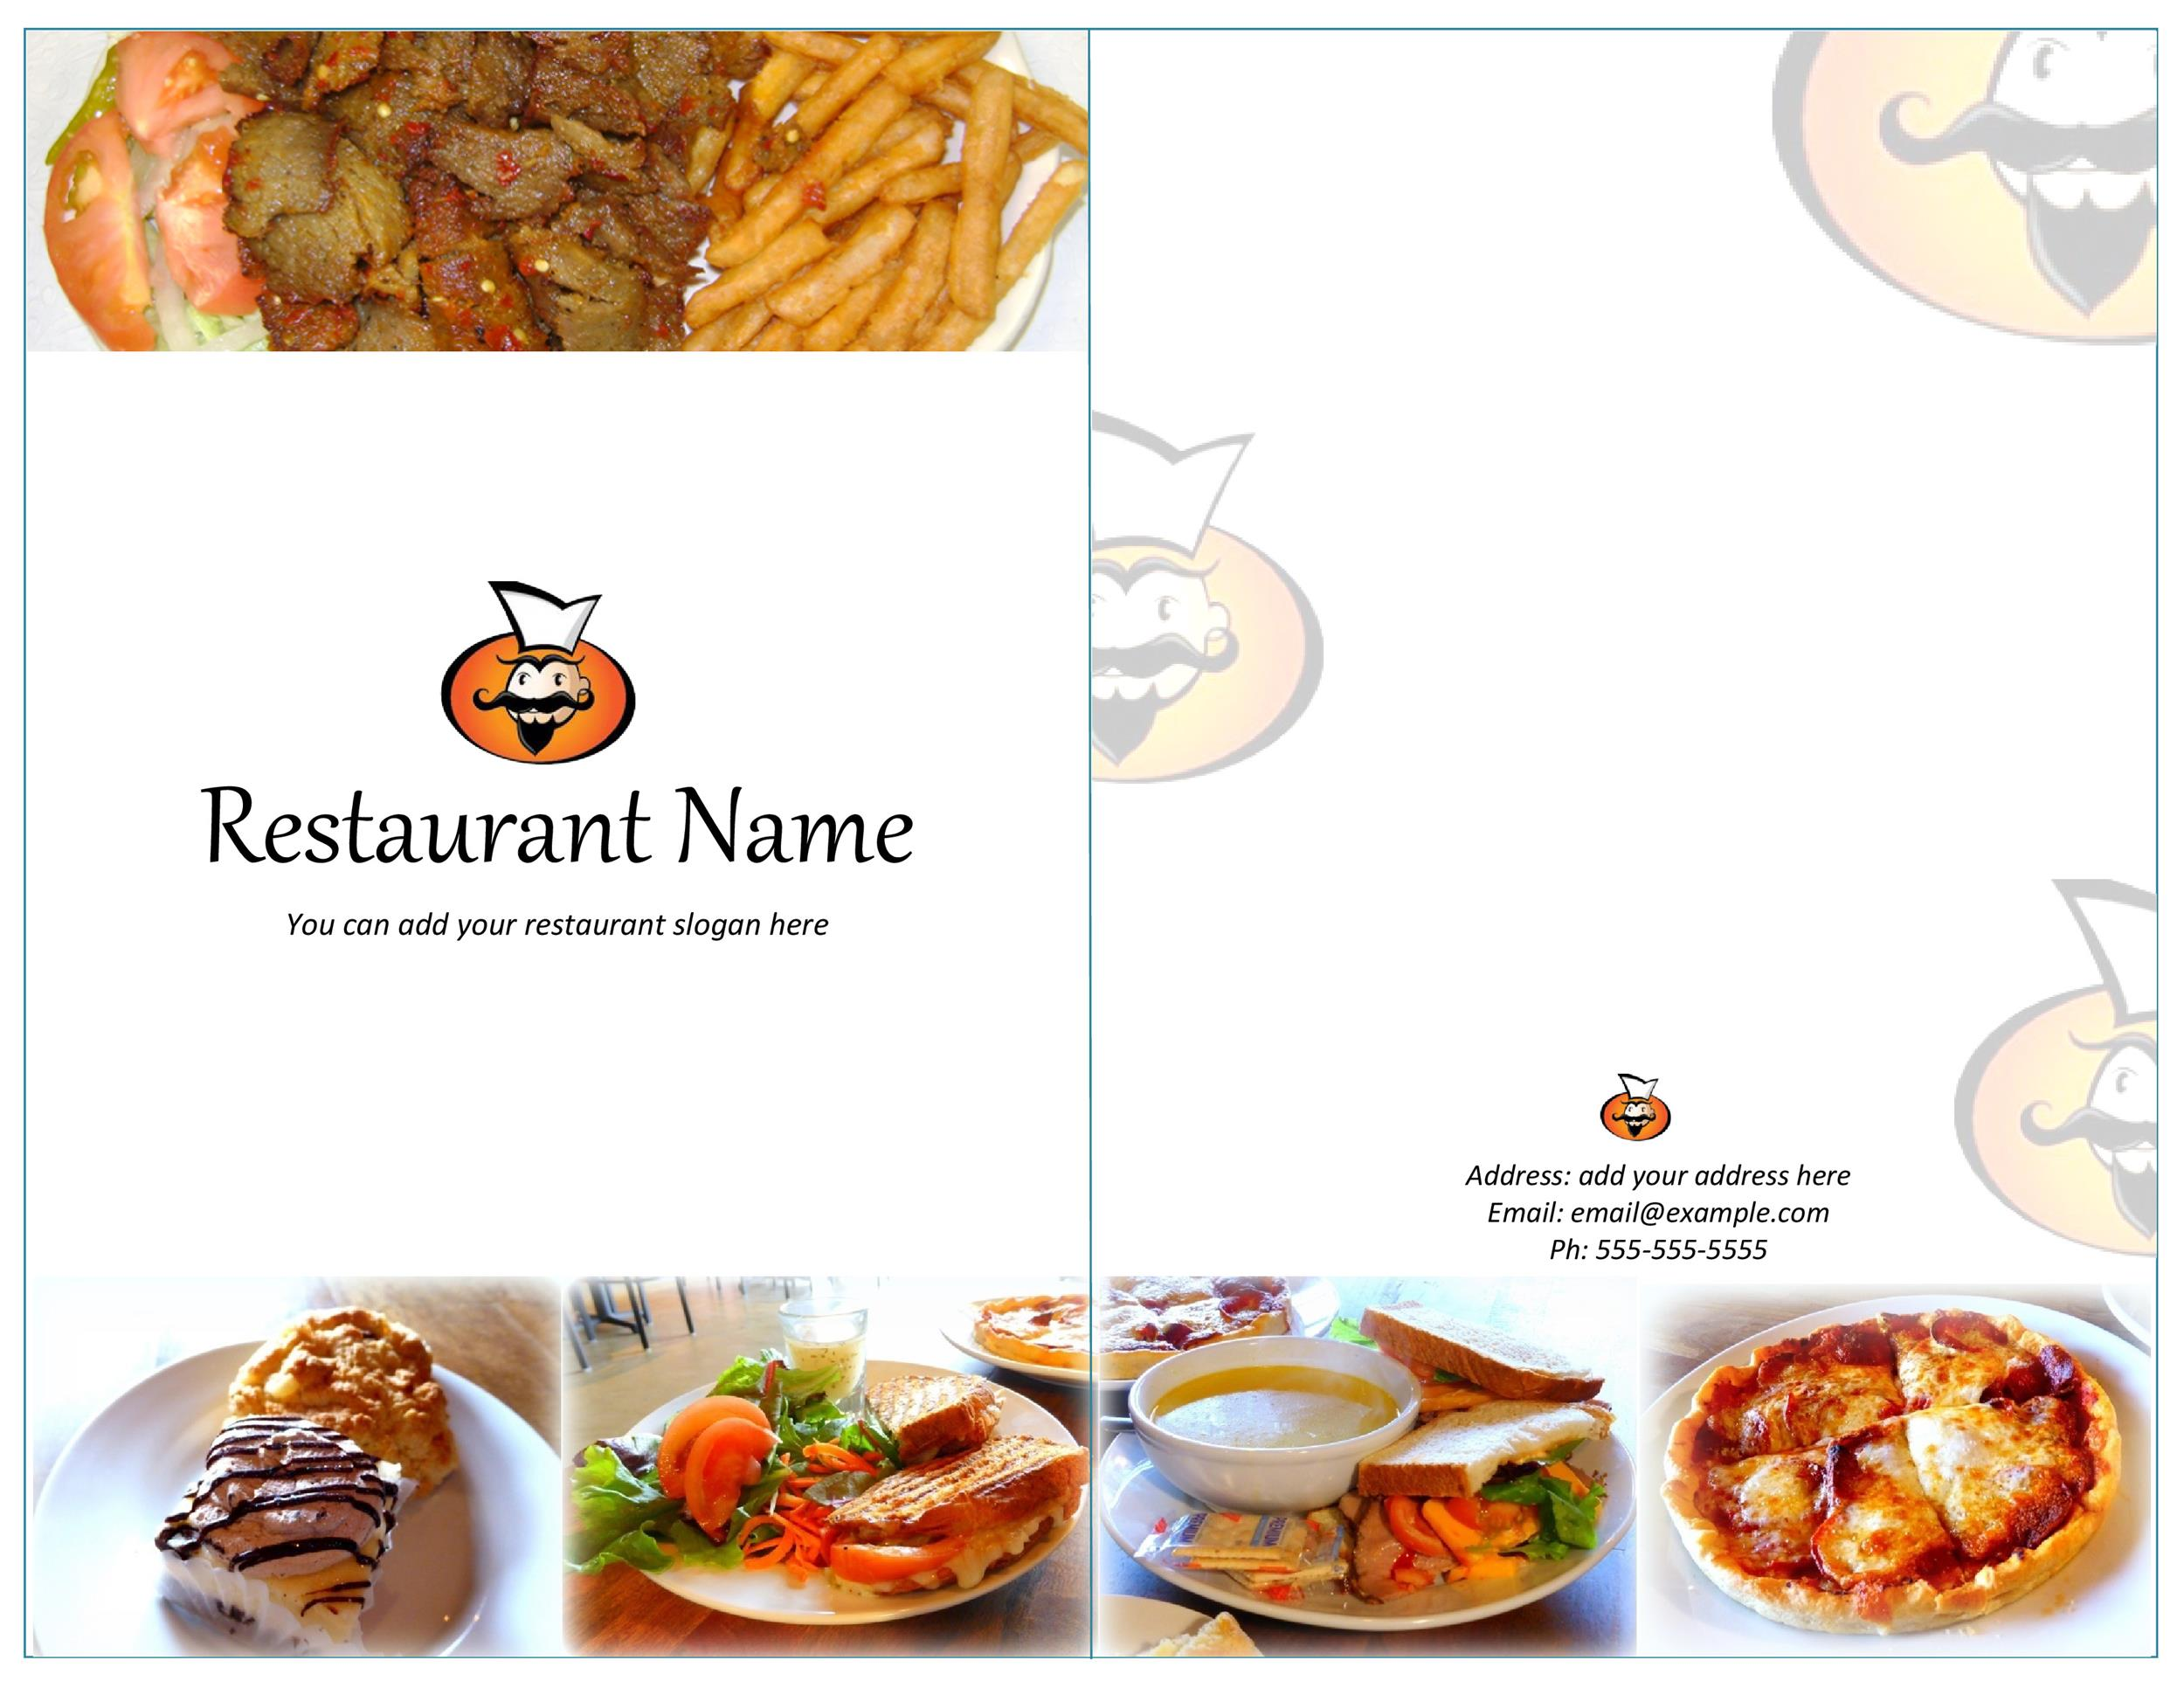 Restaurant Menu Design Templates Free Leoncapers